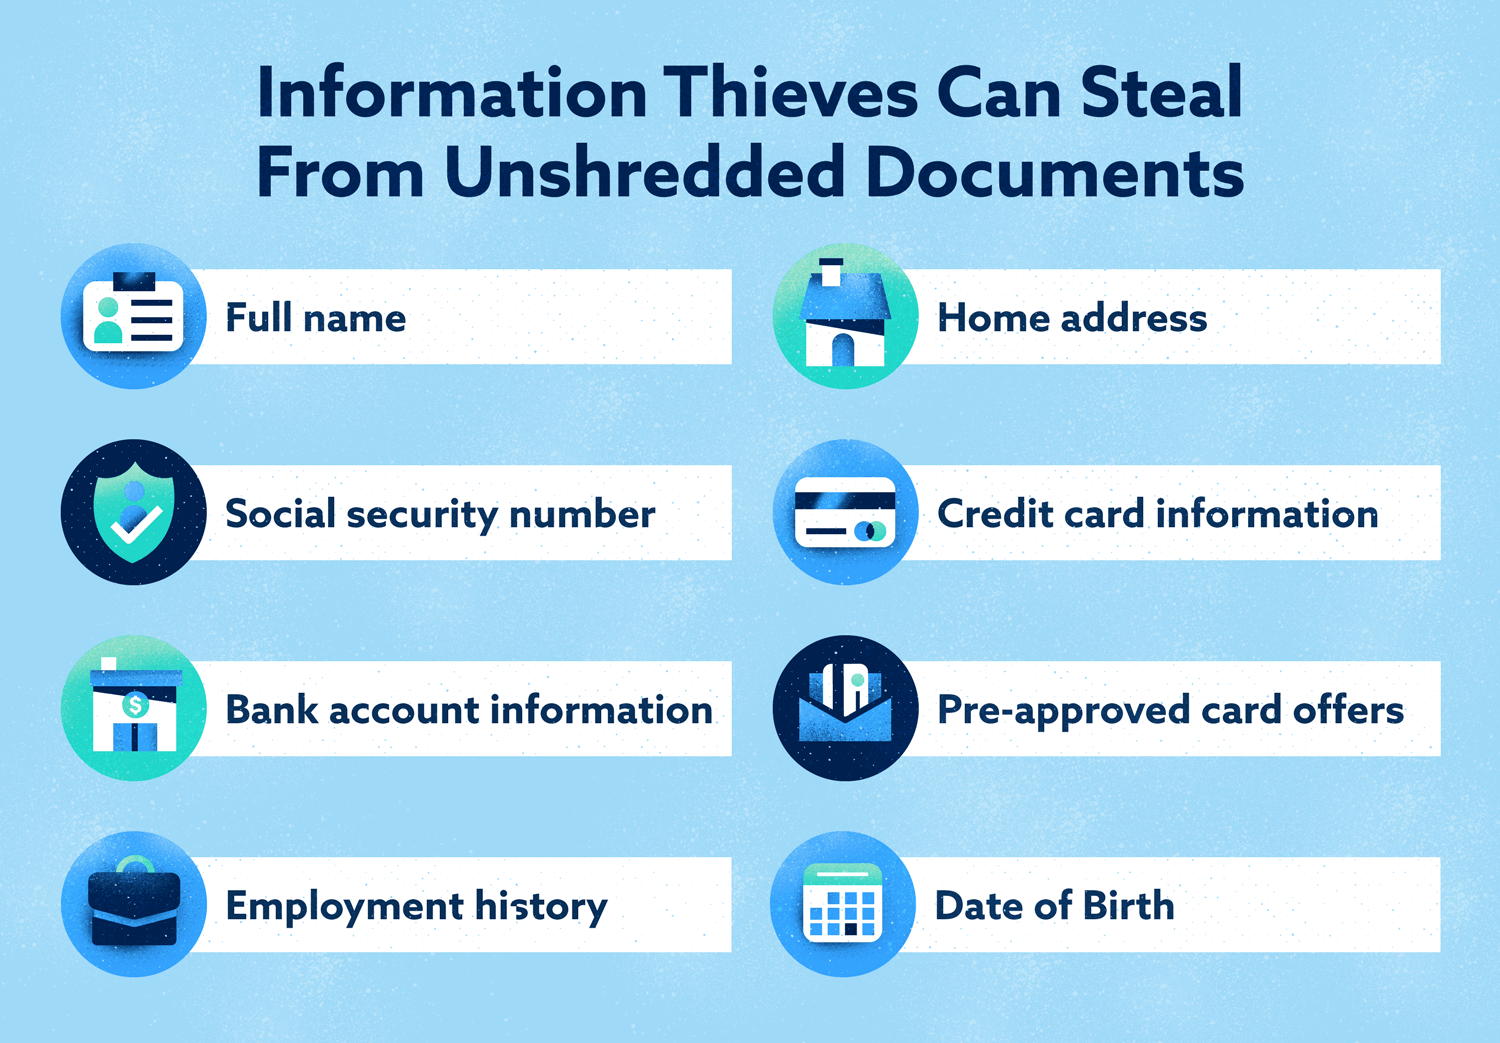 Information Thieves Can Steal From Unshredded Documents Image